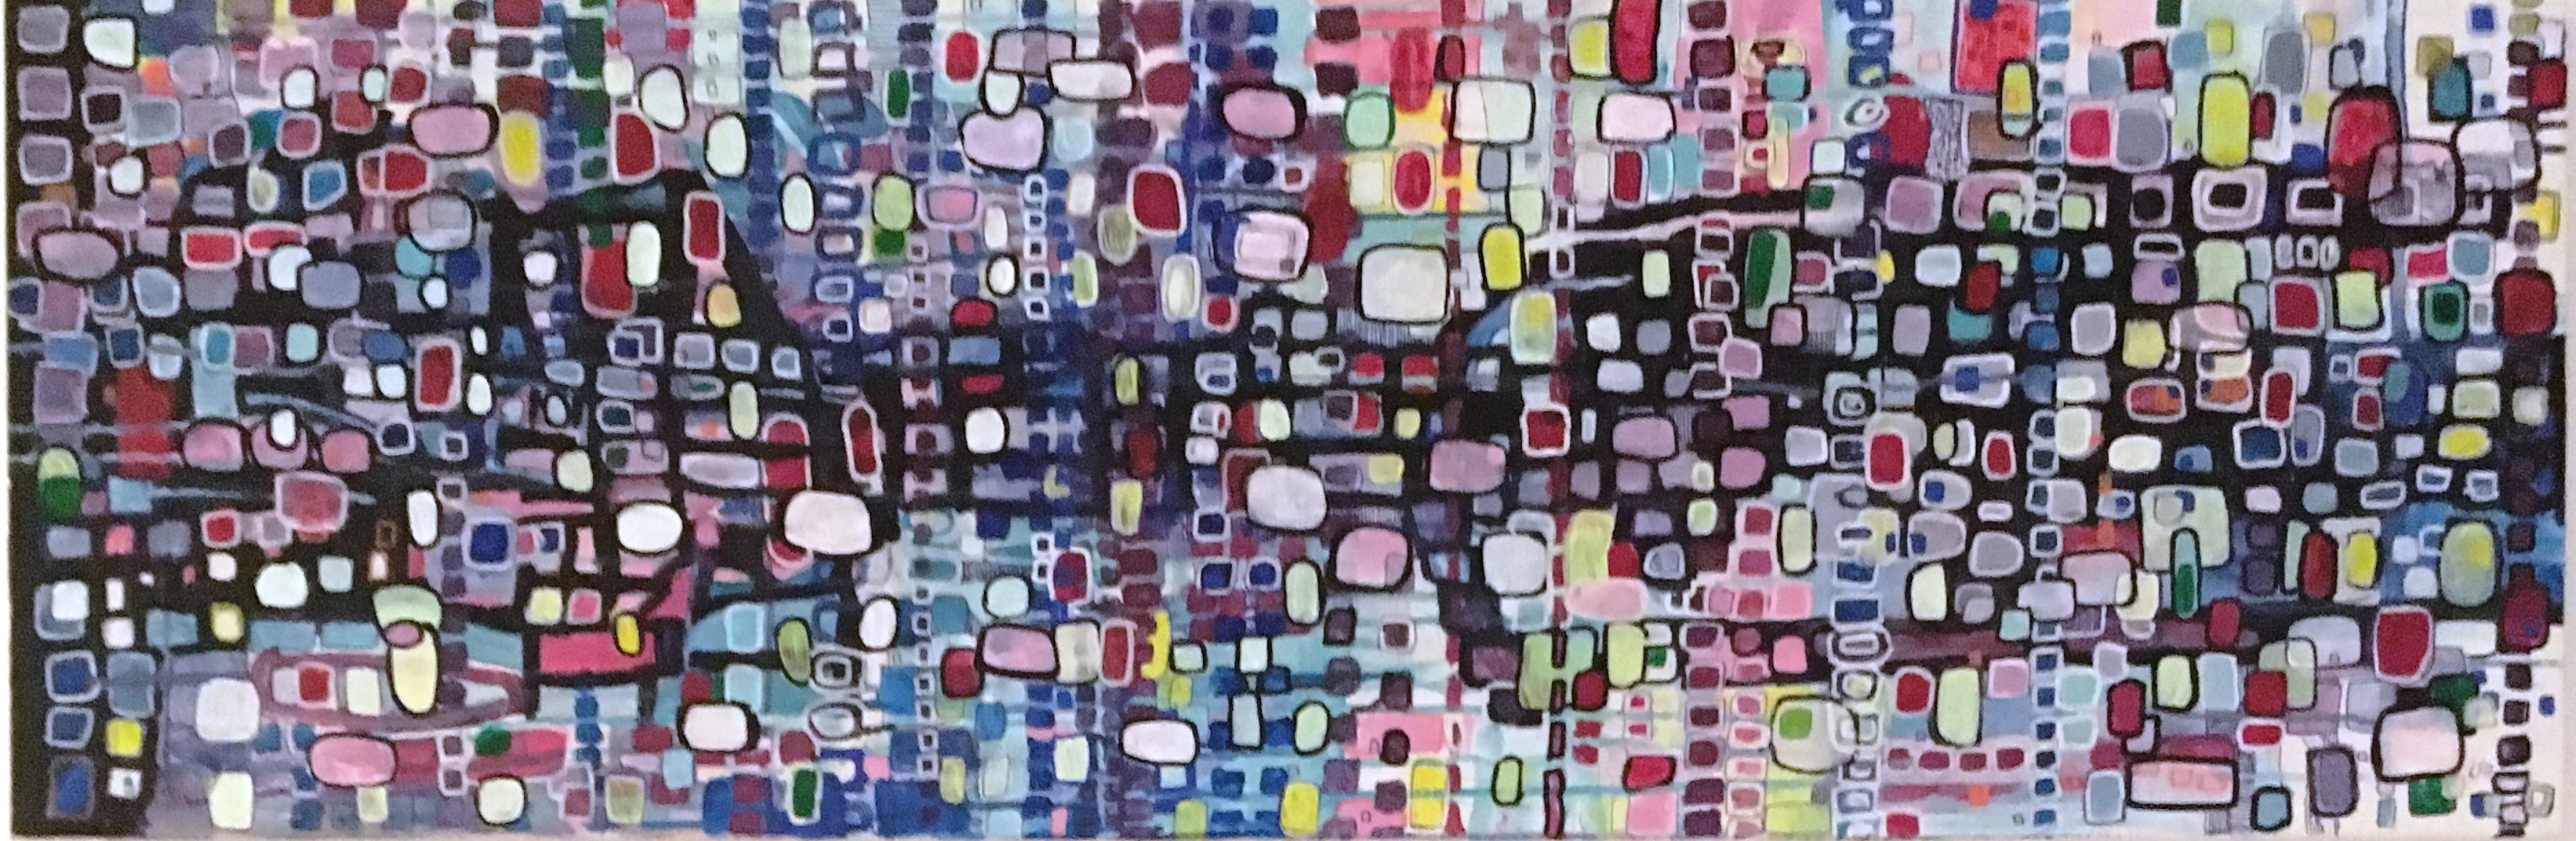 Fifty years on the planet earth_40x120 cm